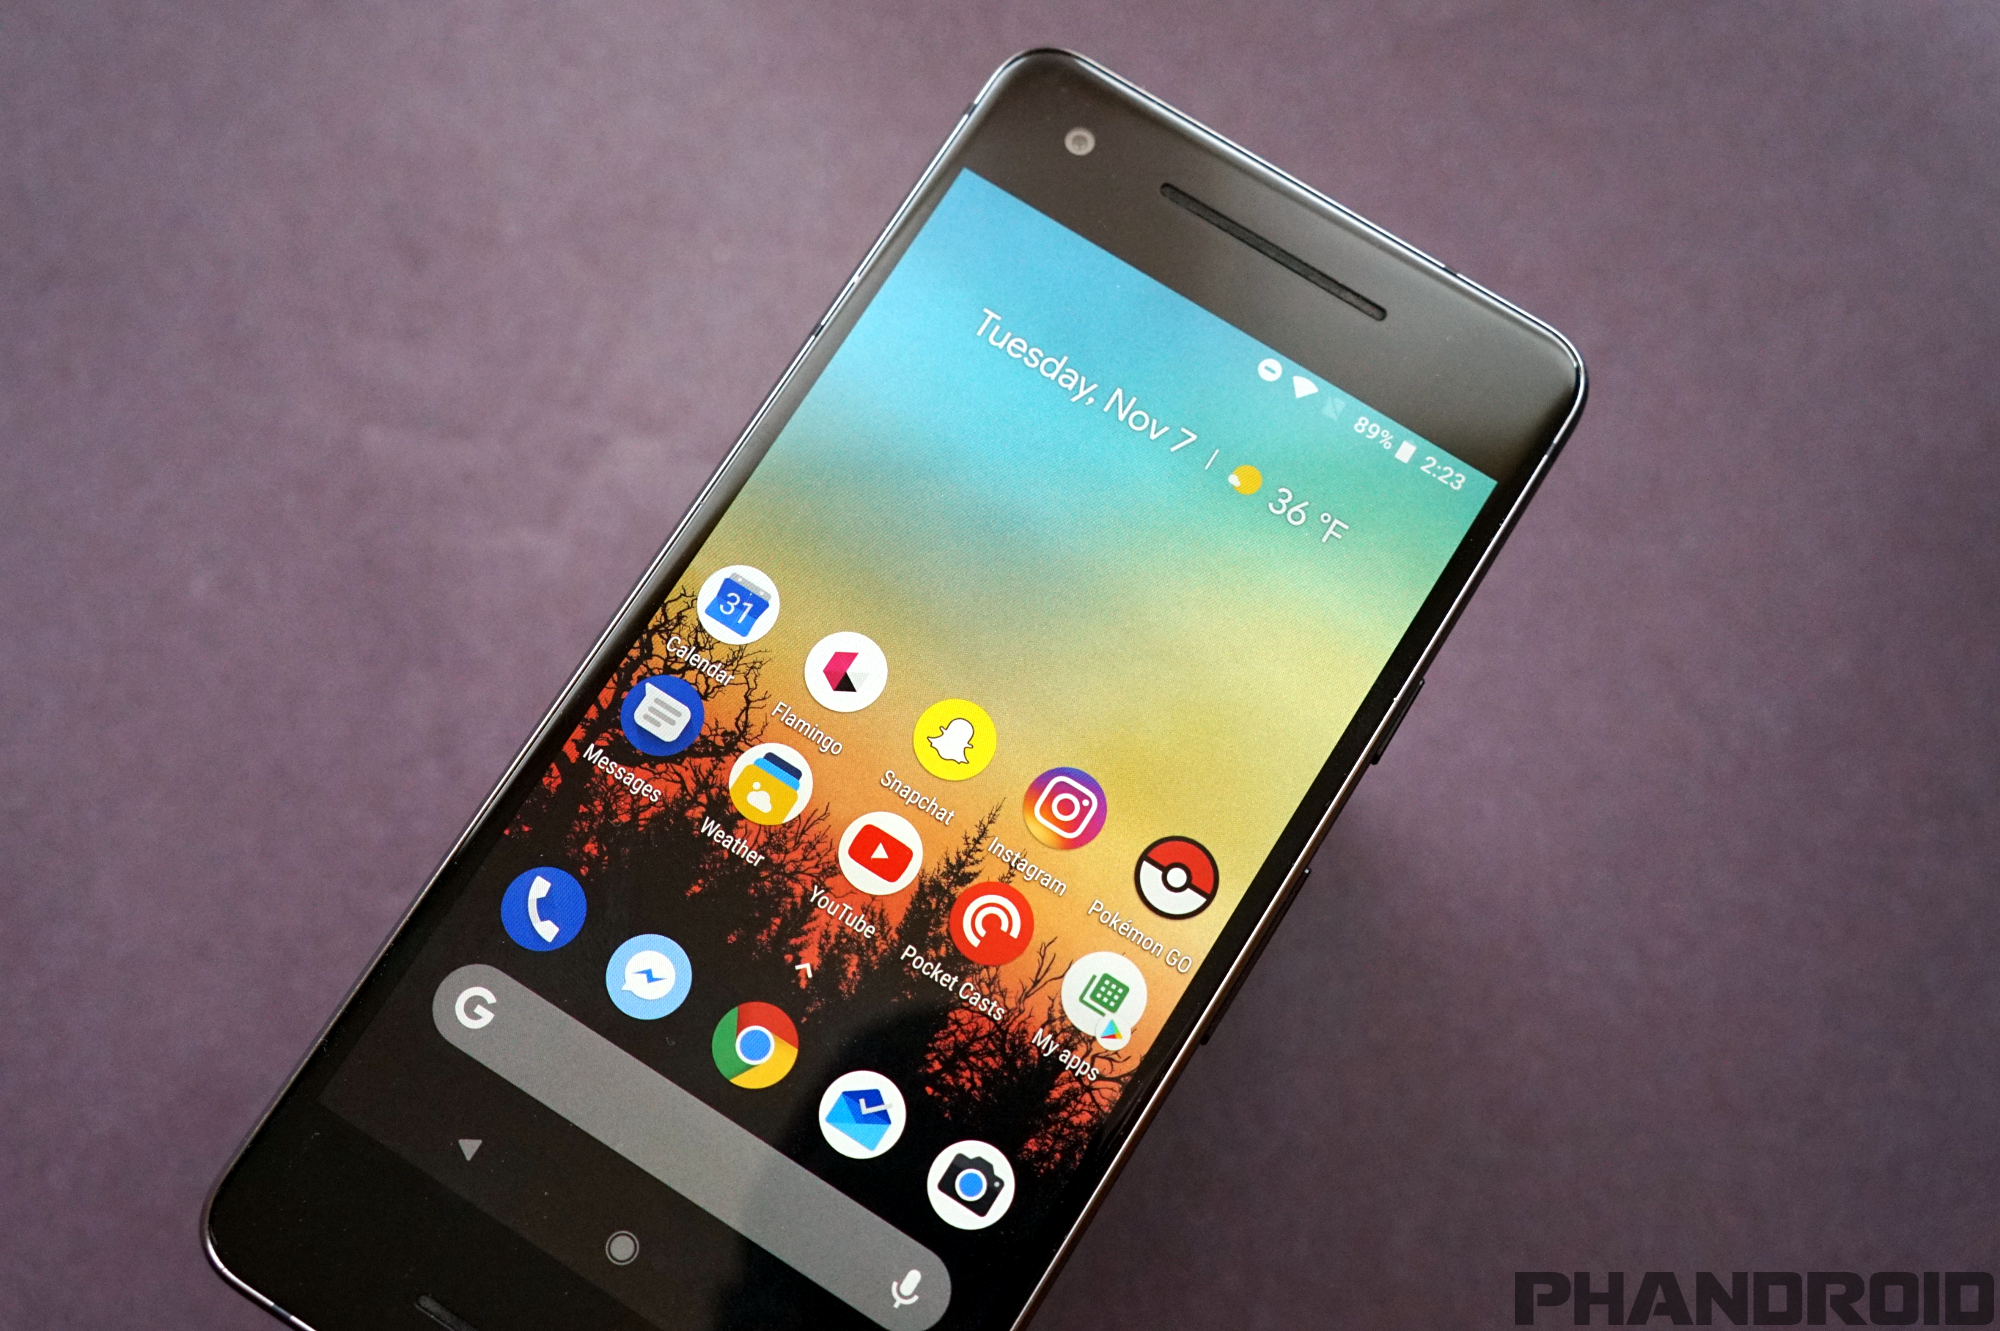 Google has fixed the Pixel 2 locked bootloader issue